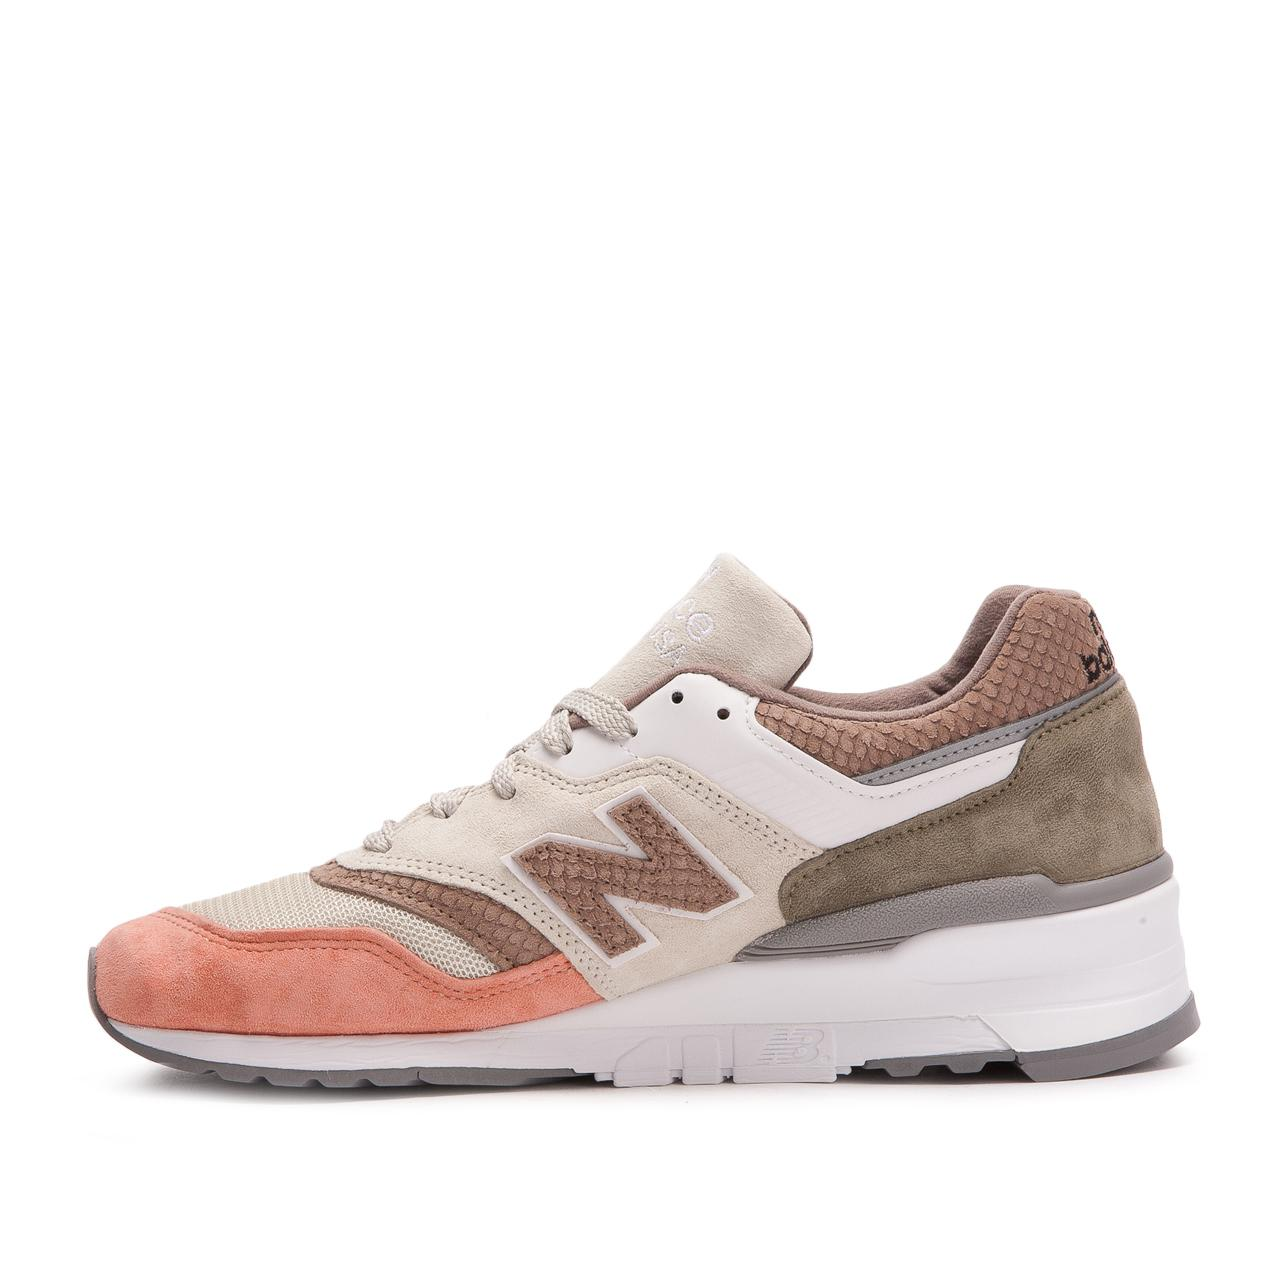 check out 32ca8 5291d New Balance Multicolor M 997 Csu Made In Usa for men